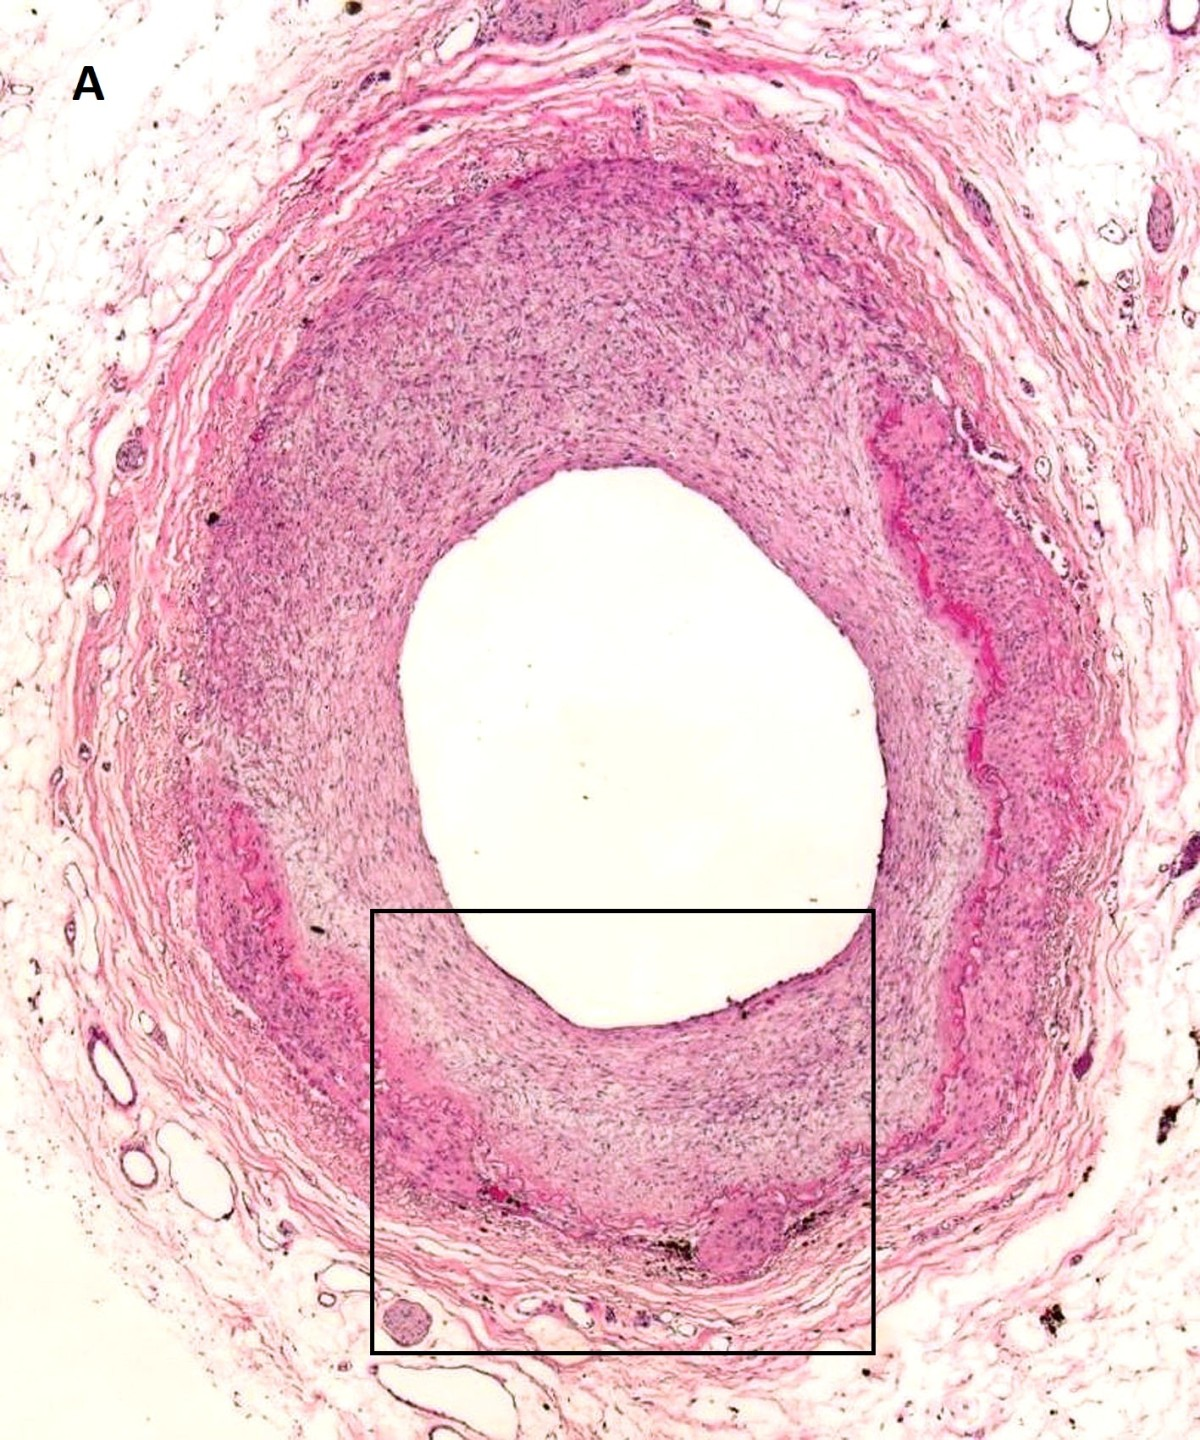 https://static-content.springer.com/image/art%3A10.1186%2F1472-6890-13-26/MediaObjects/12907_2012_Article_199_Fig1_HTML.jpg